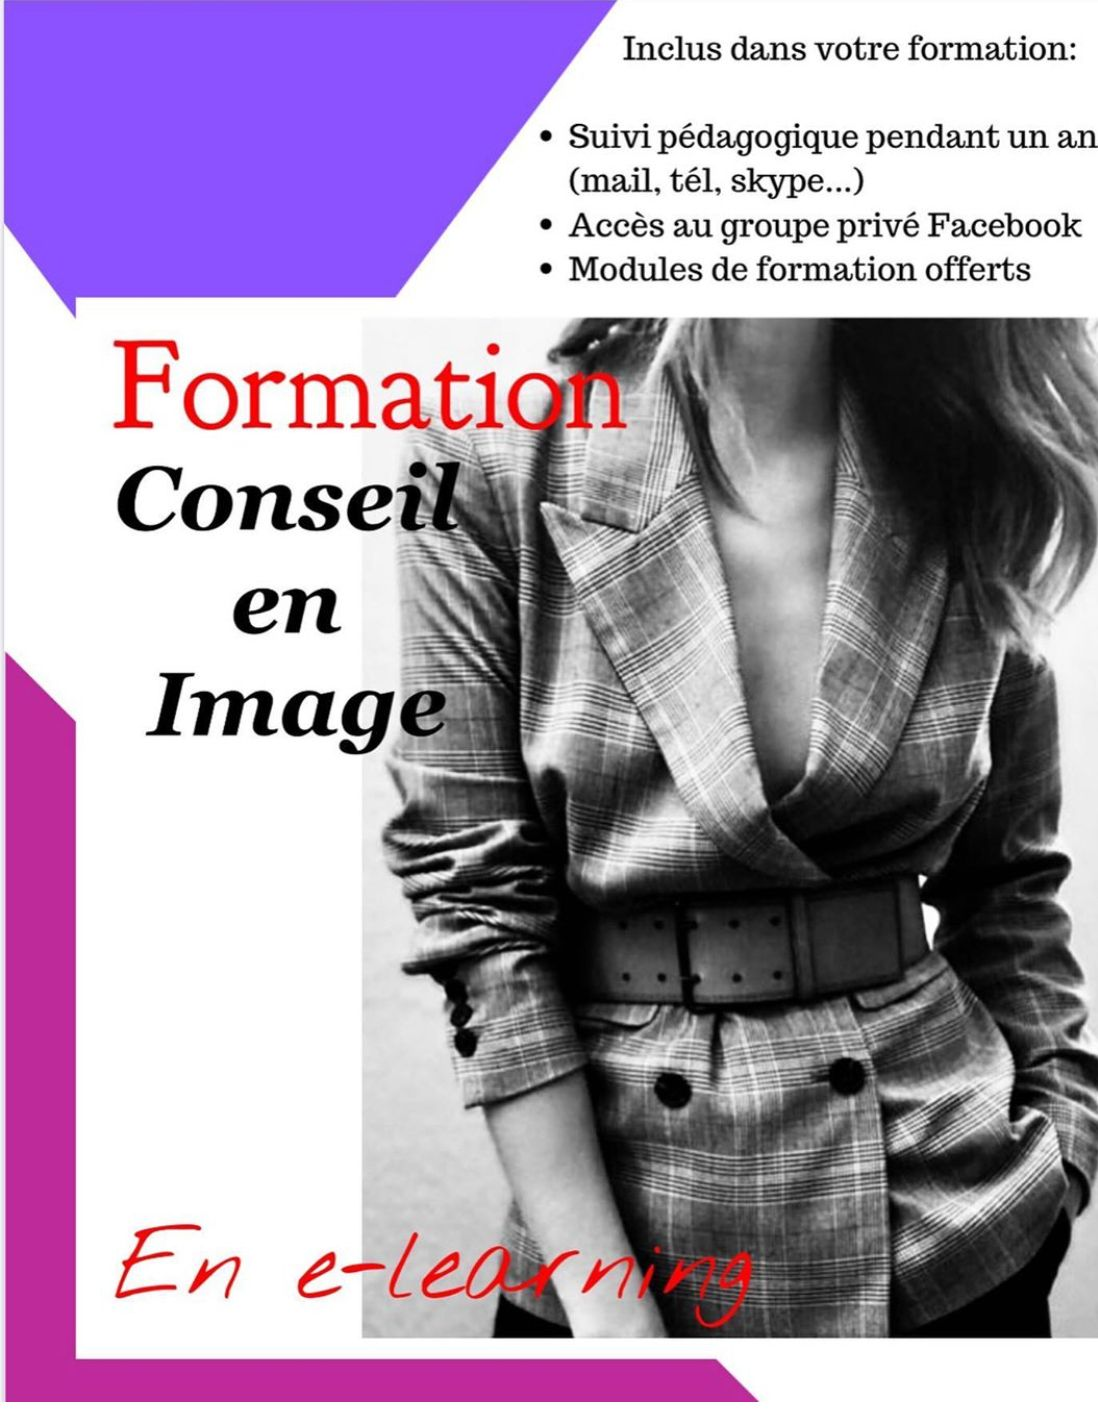 Formation Conseil En Image Relooking A Distance En 2020 Conseil En Image Conseillere En Image Conseil